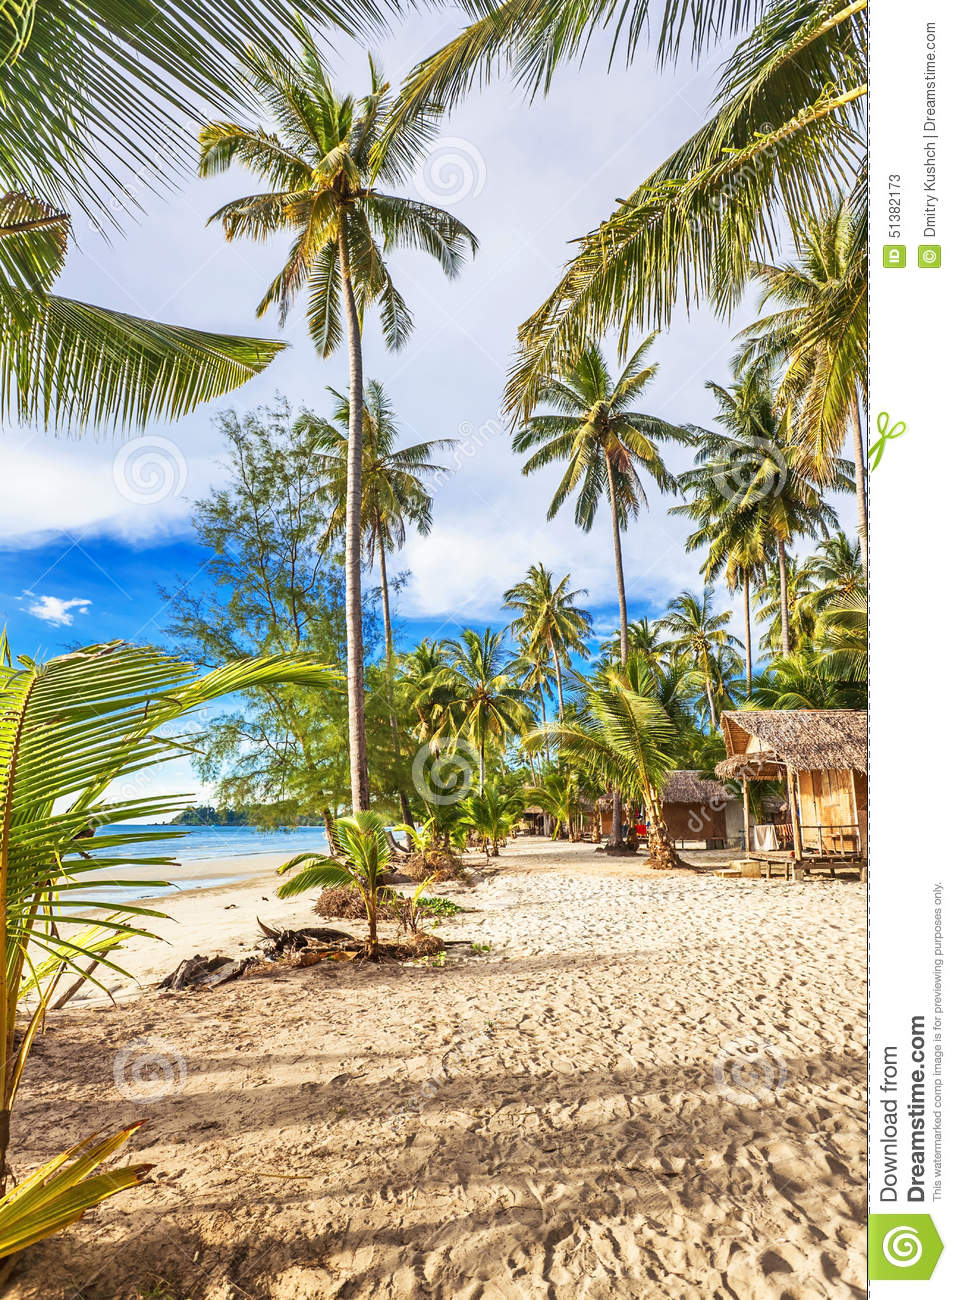 Cheap bungalows on a tropical beach stock photo image for Tropical vacation on a budget